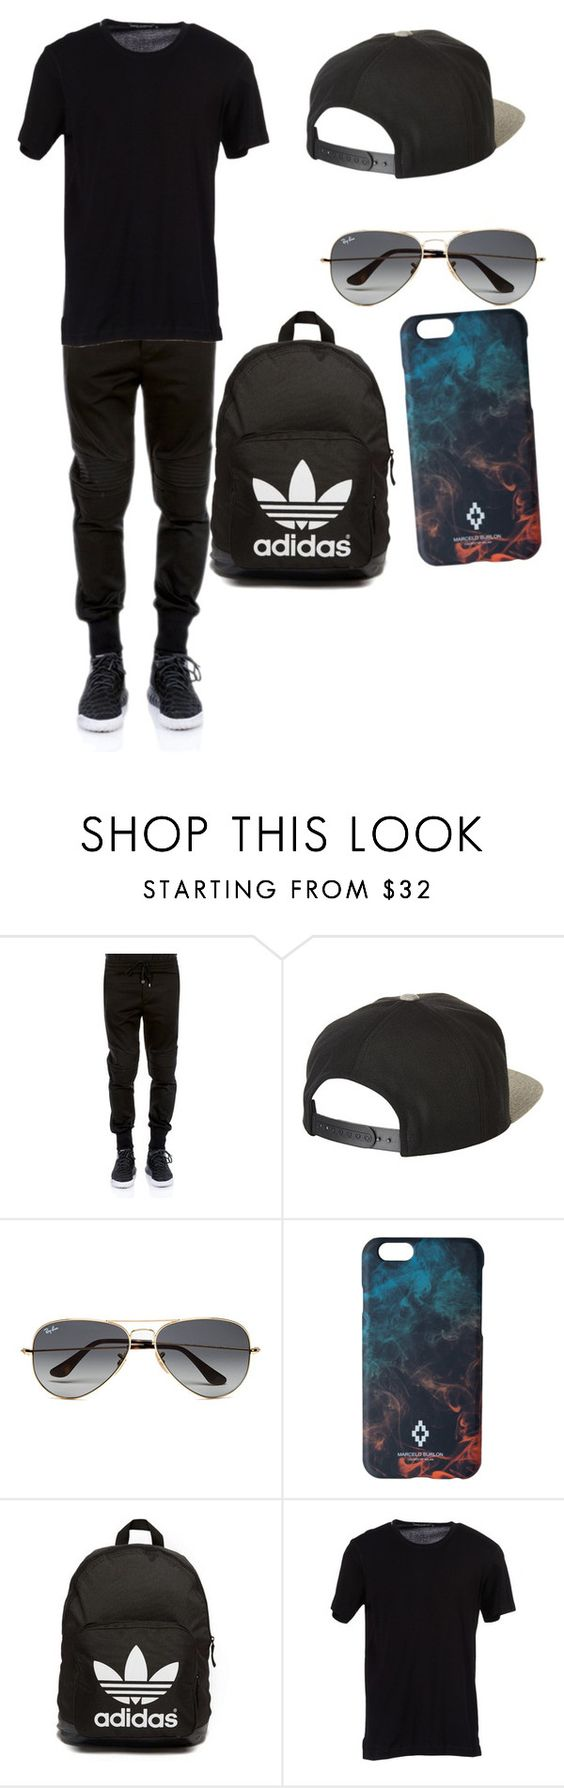 """""""EGOR"""" by explorer-14655713062 ❤ liked on Polyvore featuring Dolce&Gabbana, Brixton, Ray-Ban, Marcelo Burlon, adidas Originals, men's fashion and menswear"""